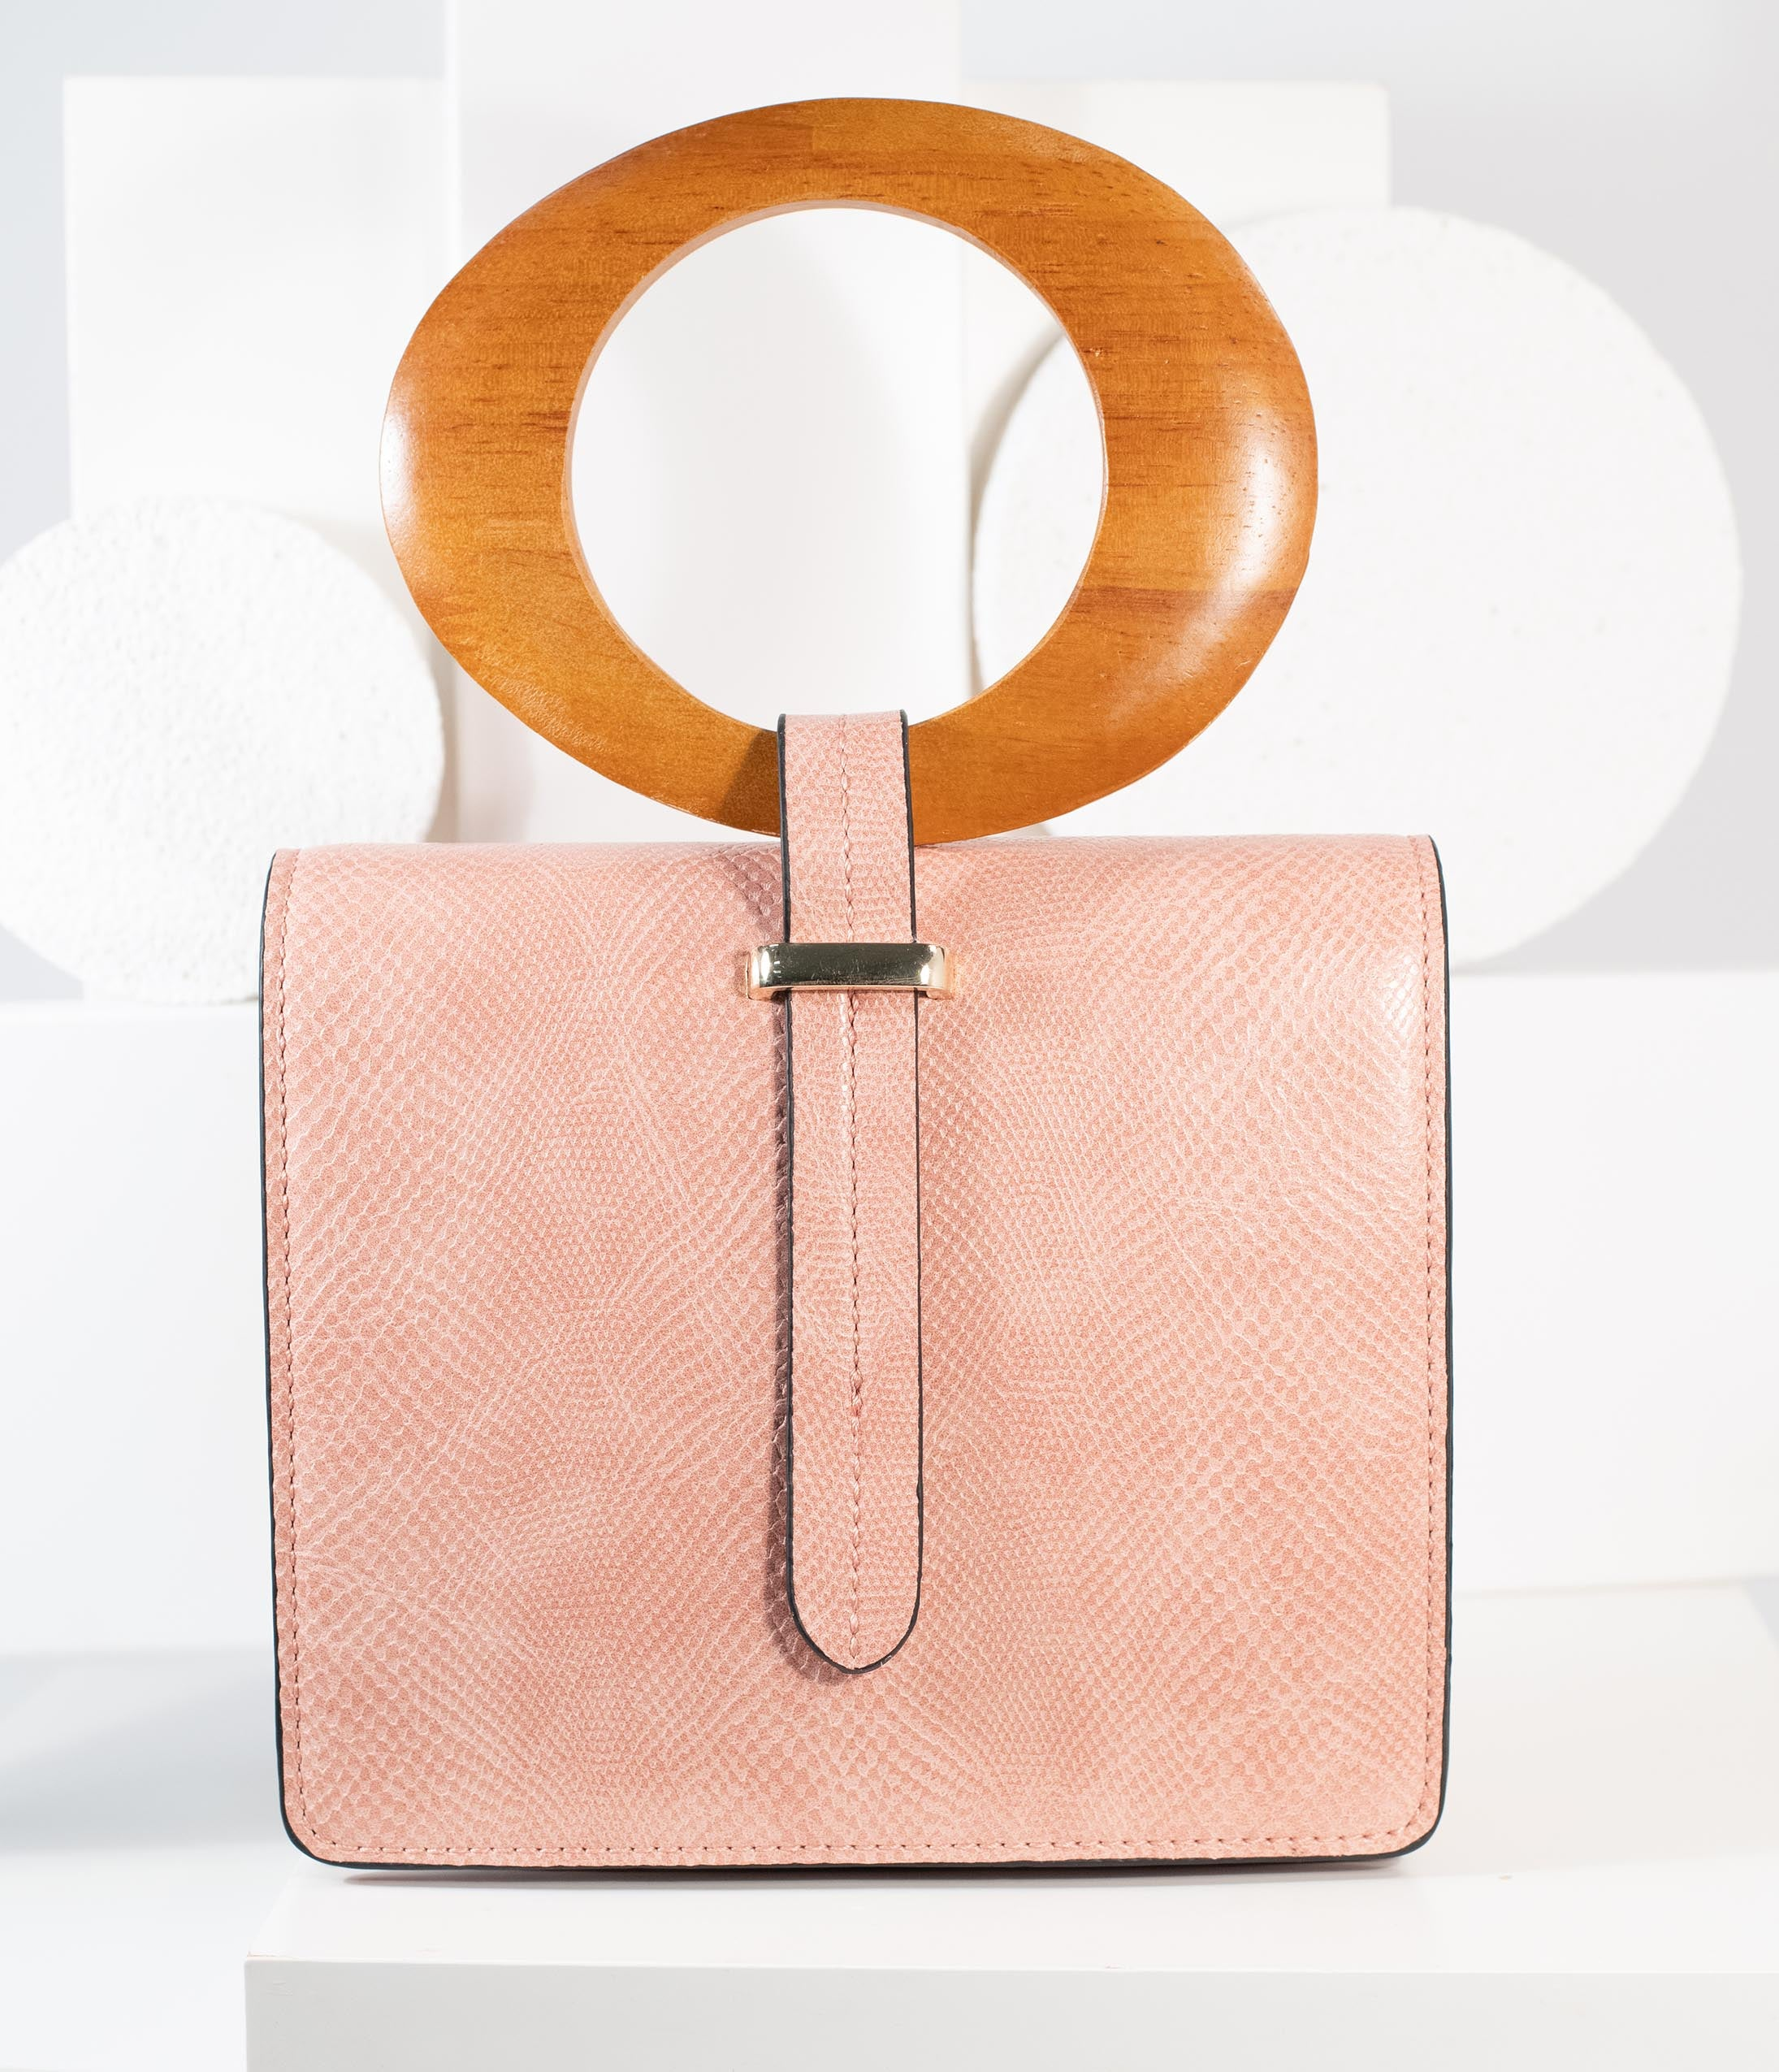 60s Dresses | 1960s Dresses Mod, Mini, Hippie Blush Pink Leatherette Wood Handle Crossbody Purse $54.00 AT vintagedancer.com